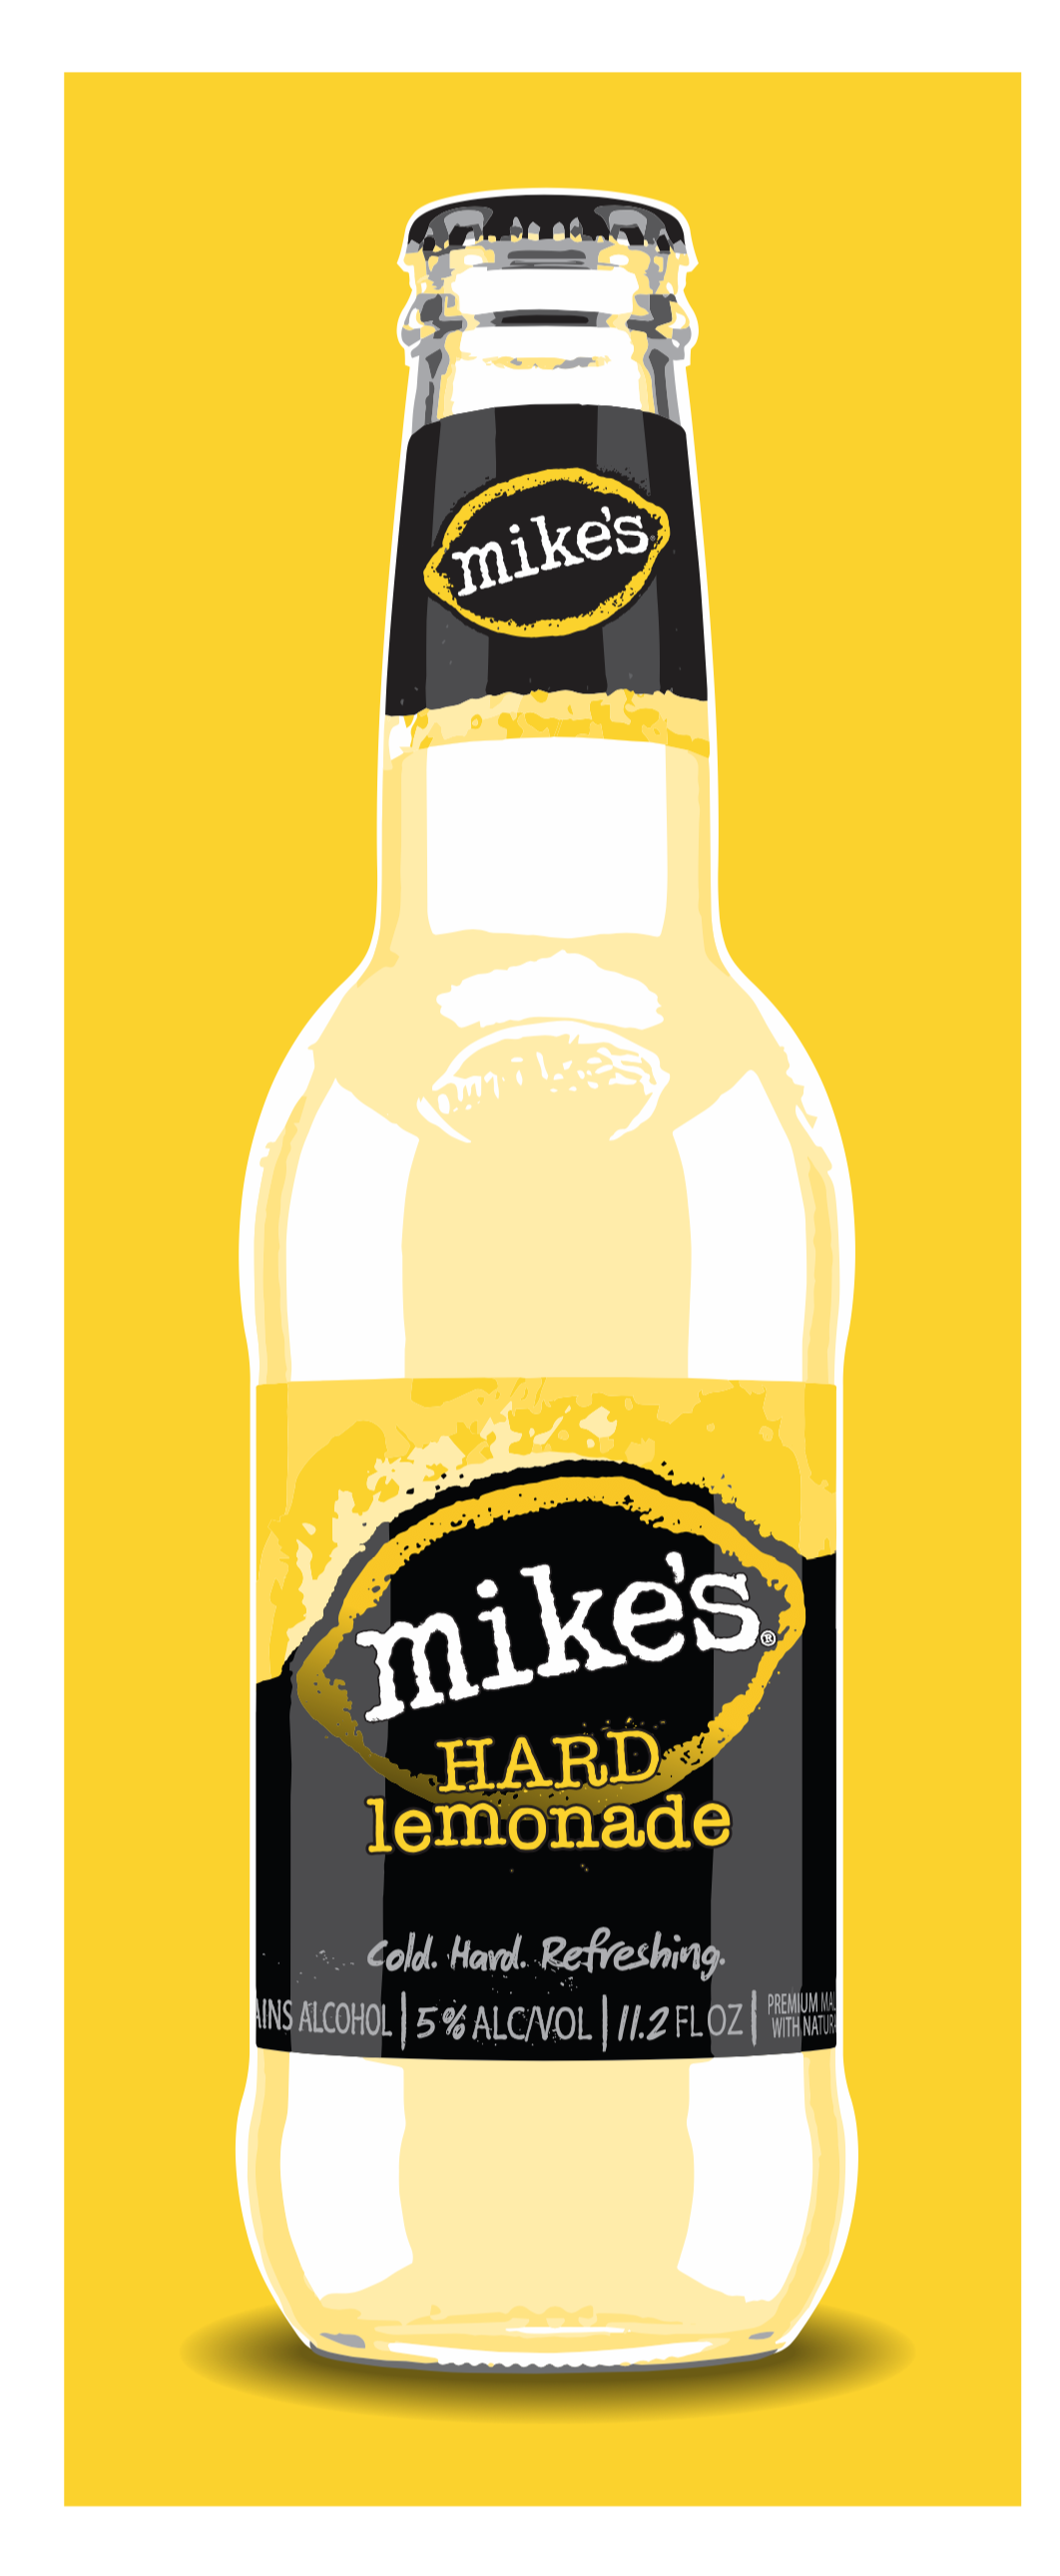 Chris Musselman Illustration mikes hard lemonade bottle